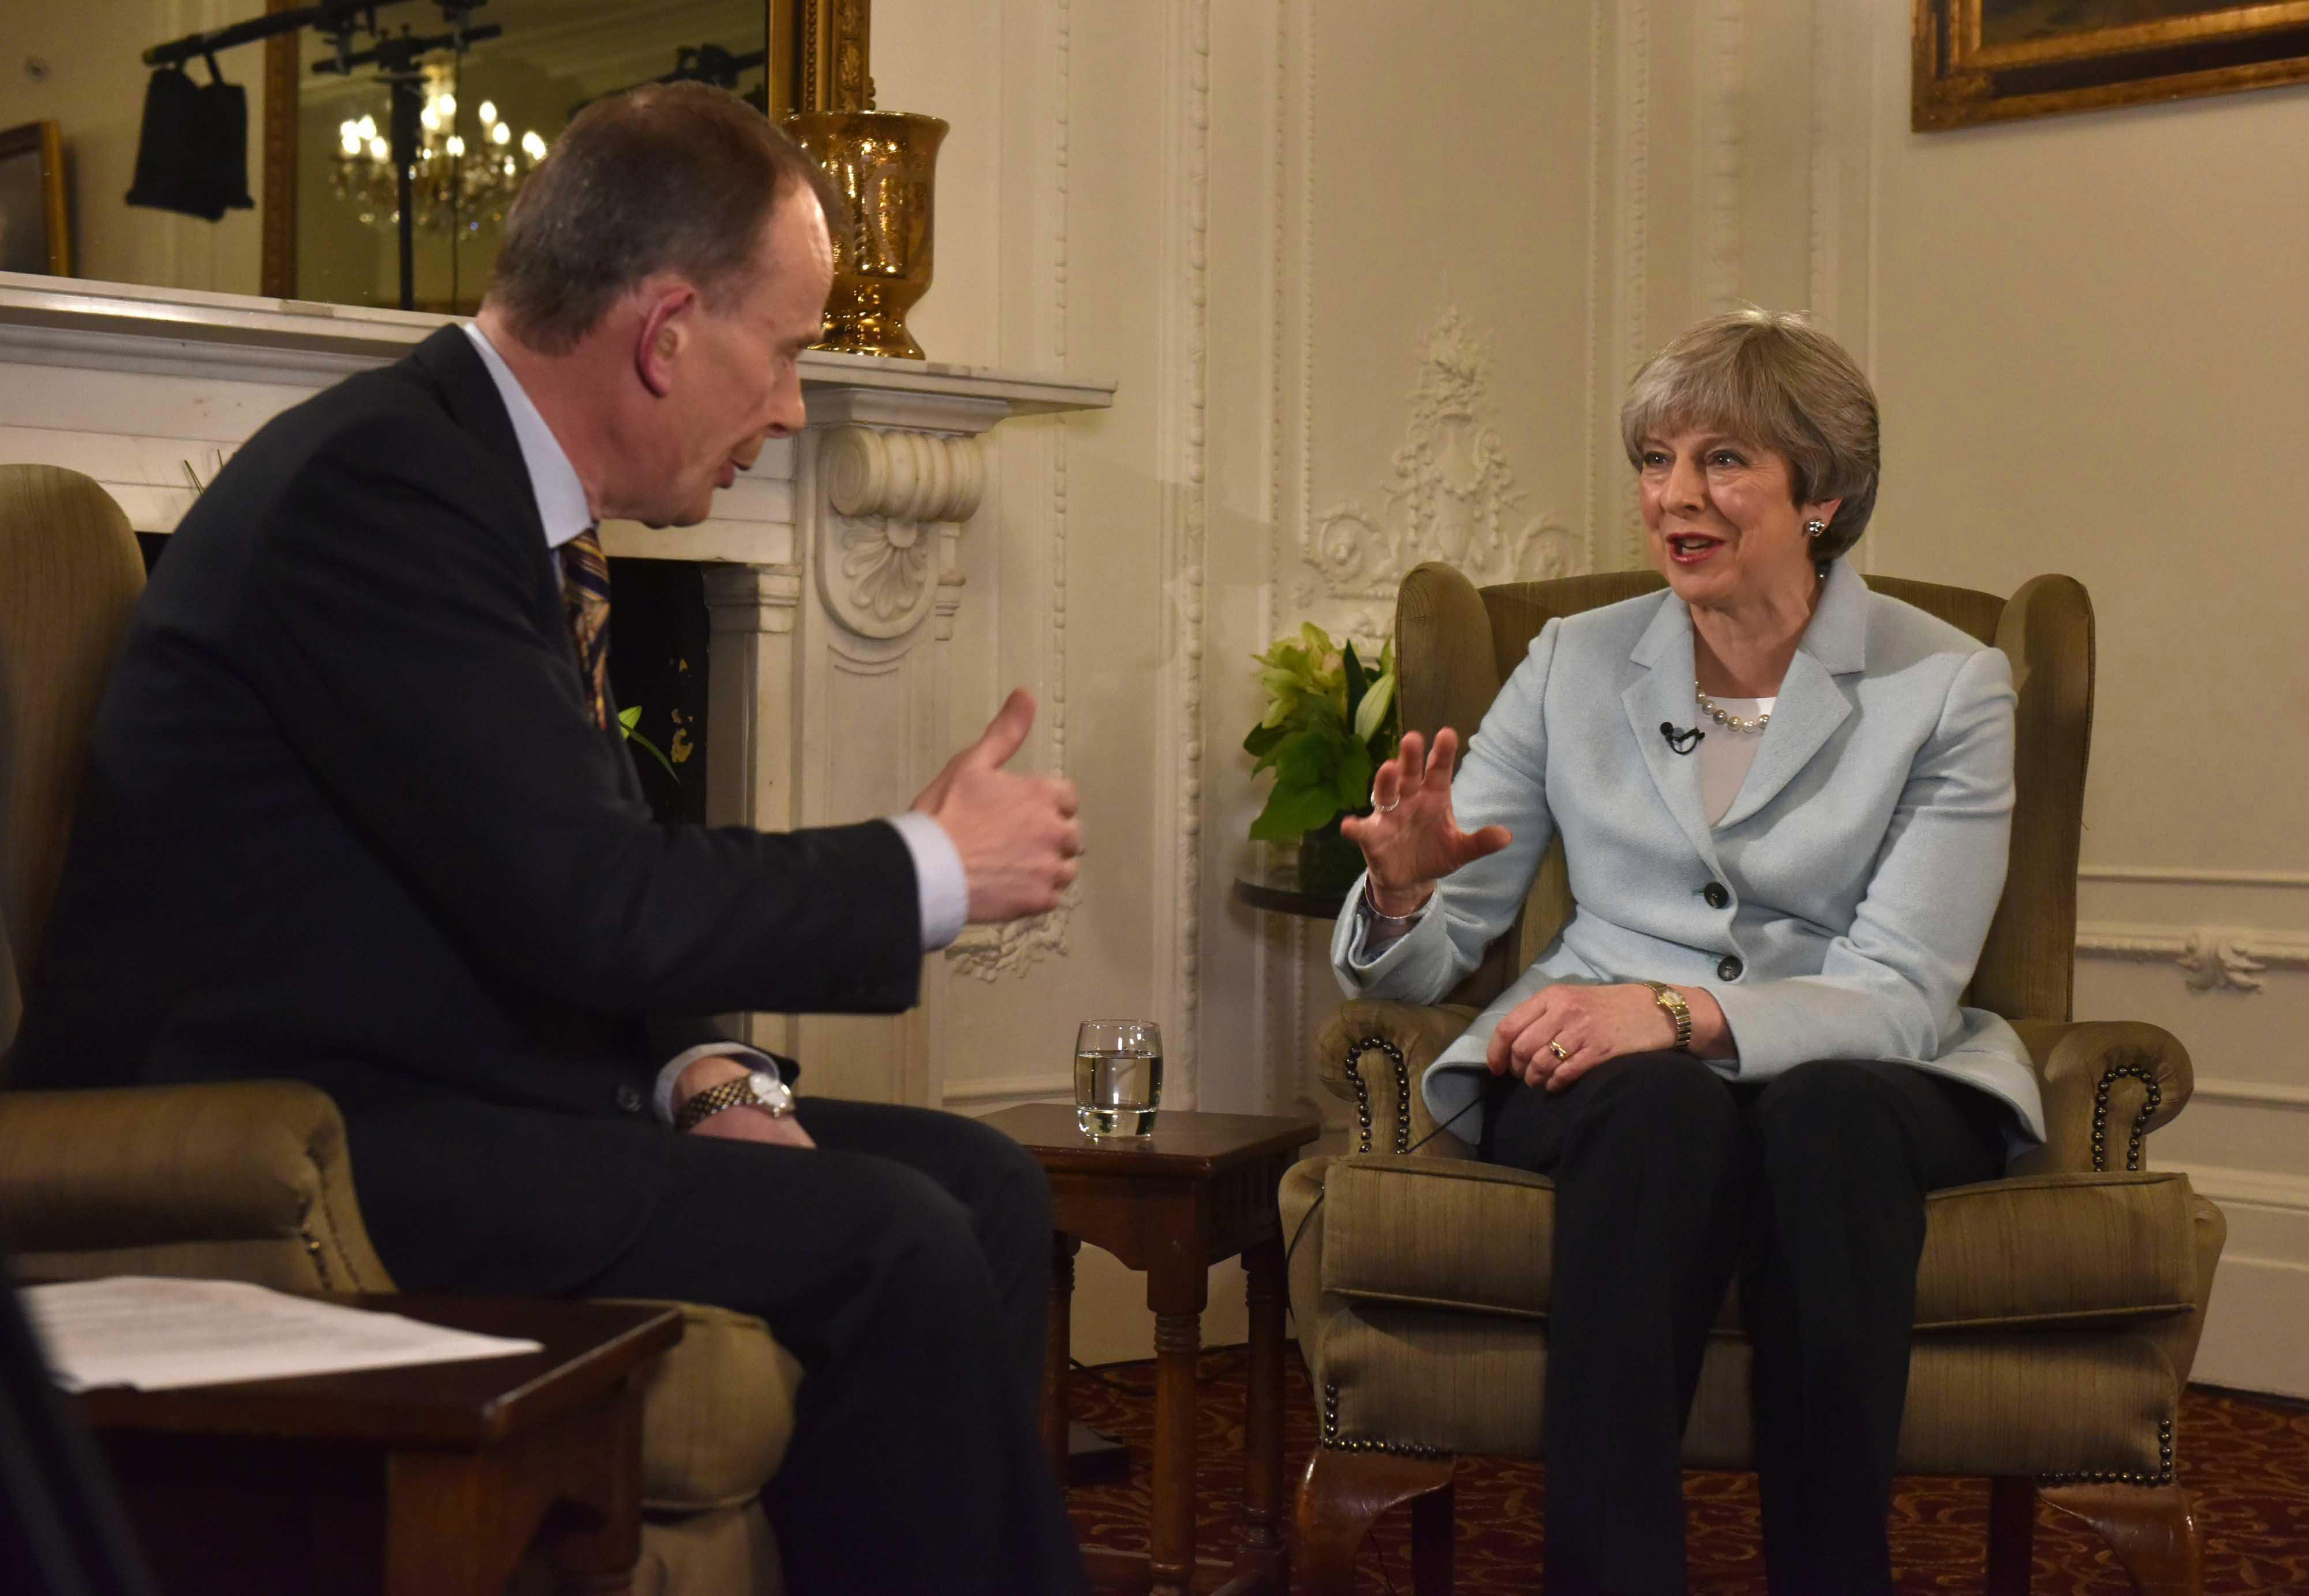 Andrew Marr confronts Theresa May over NHS winter crisis saying he would have died without swift medical care after having a stroke